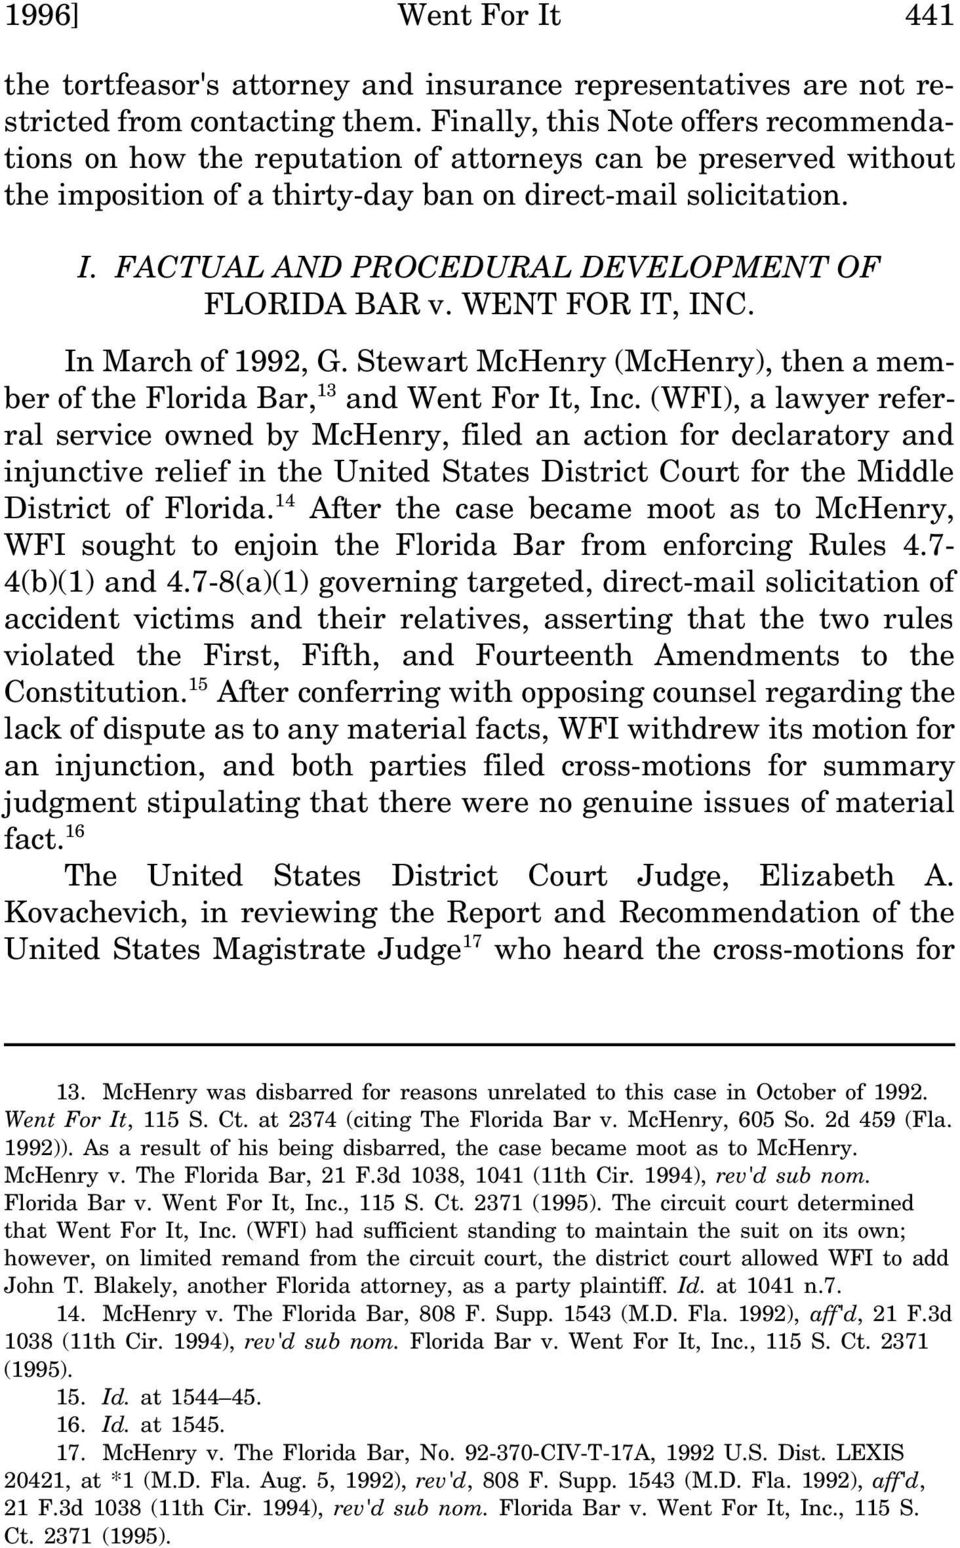 FACTUAL AND PROCEDURAL DEVELOPMENT OF FLORIDA BAR v. WENT FOR IT, INC. In March of 1992, G. Stewart McHenry (McHenry), then a member of the Florida Bar, 13 and Went For It, Inc.